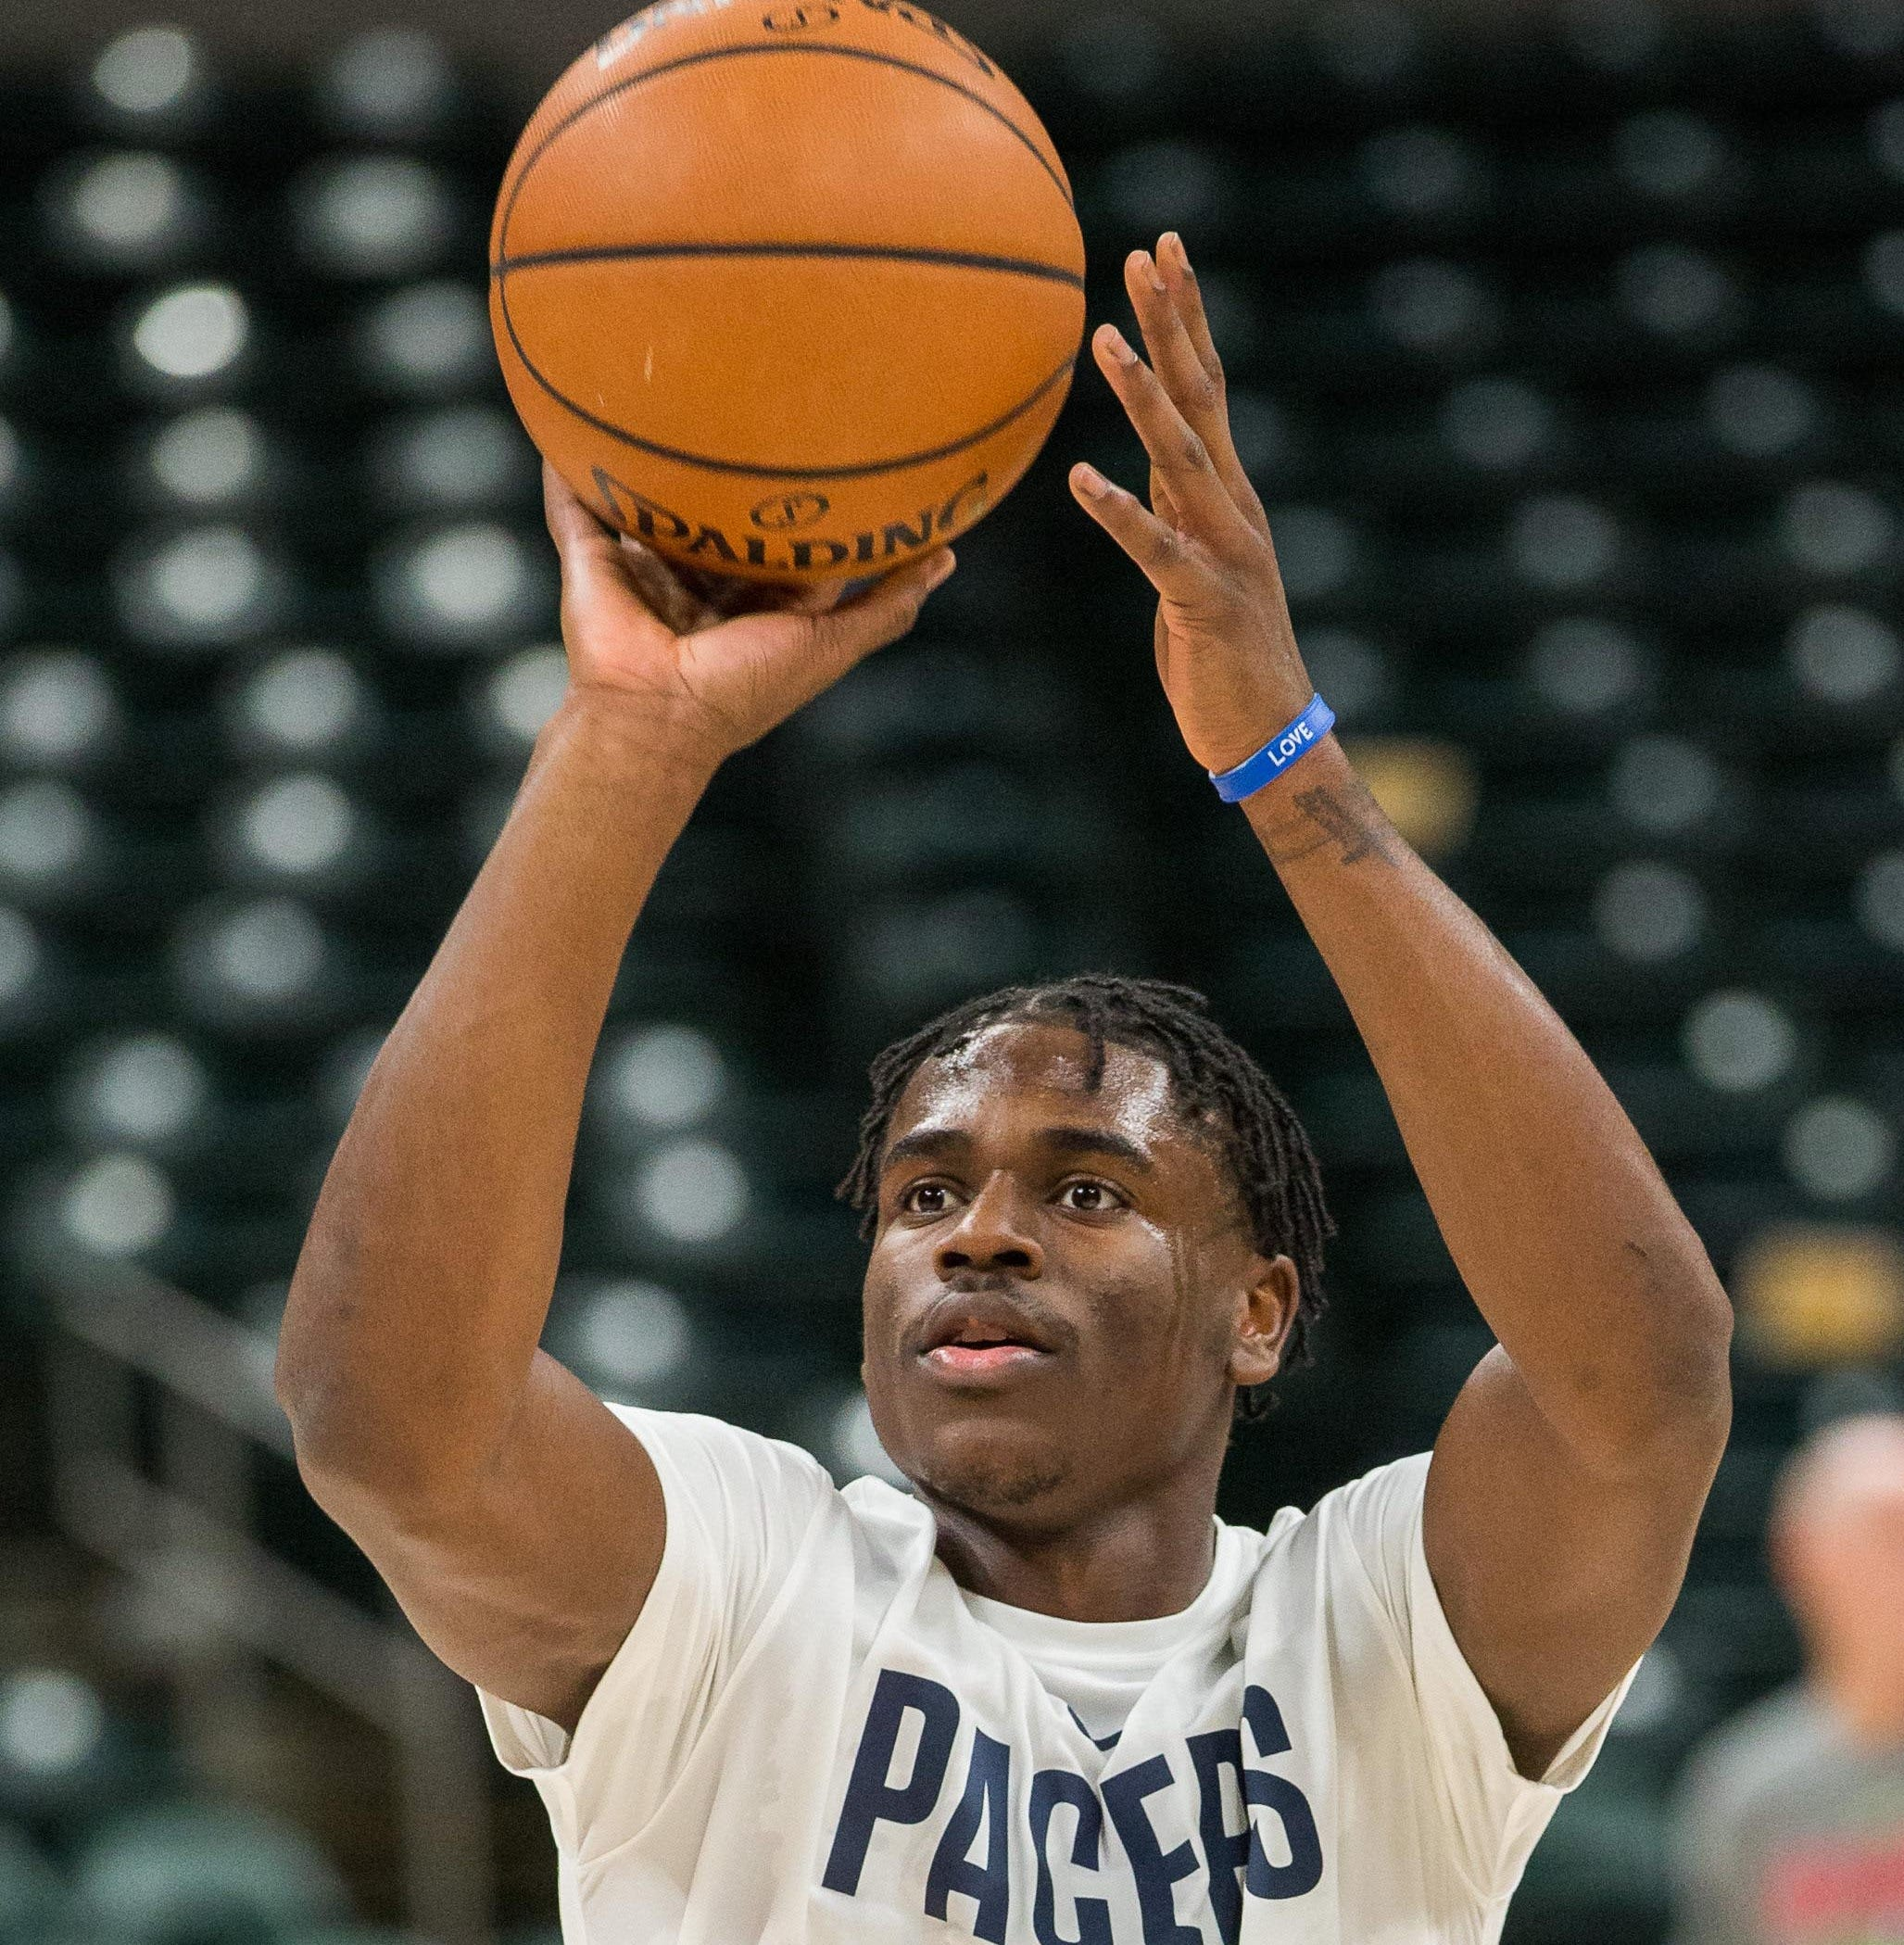 Pacers rookie Aaron Holiday goes off in fourth quarter against Hawks